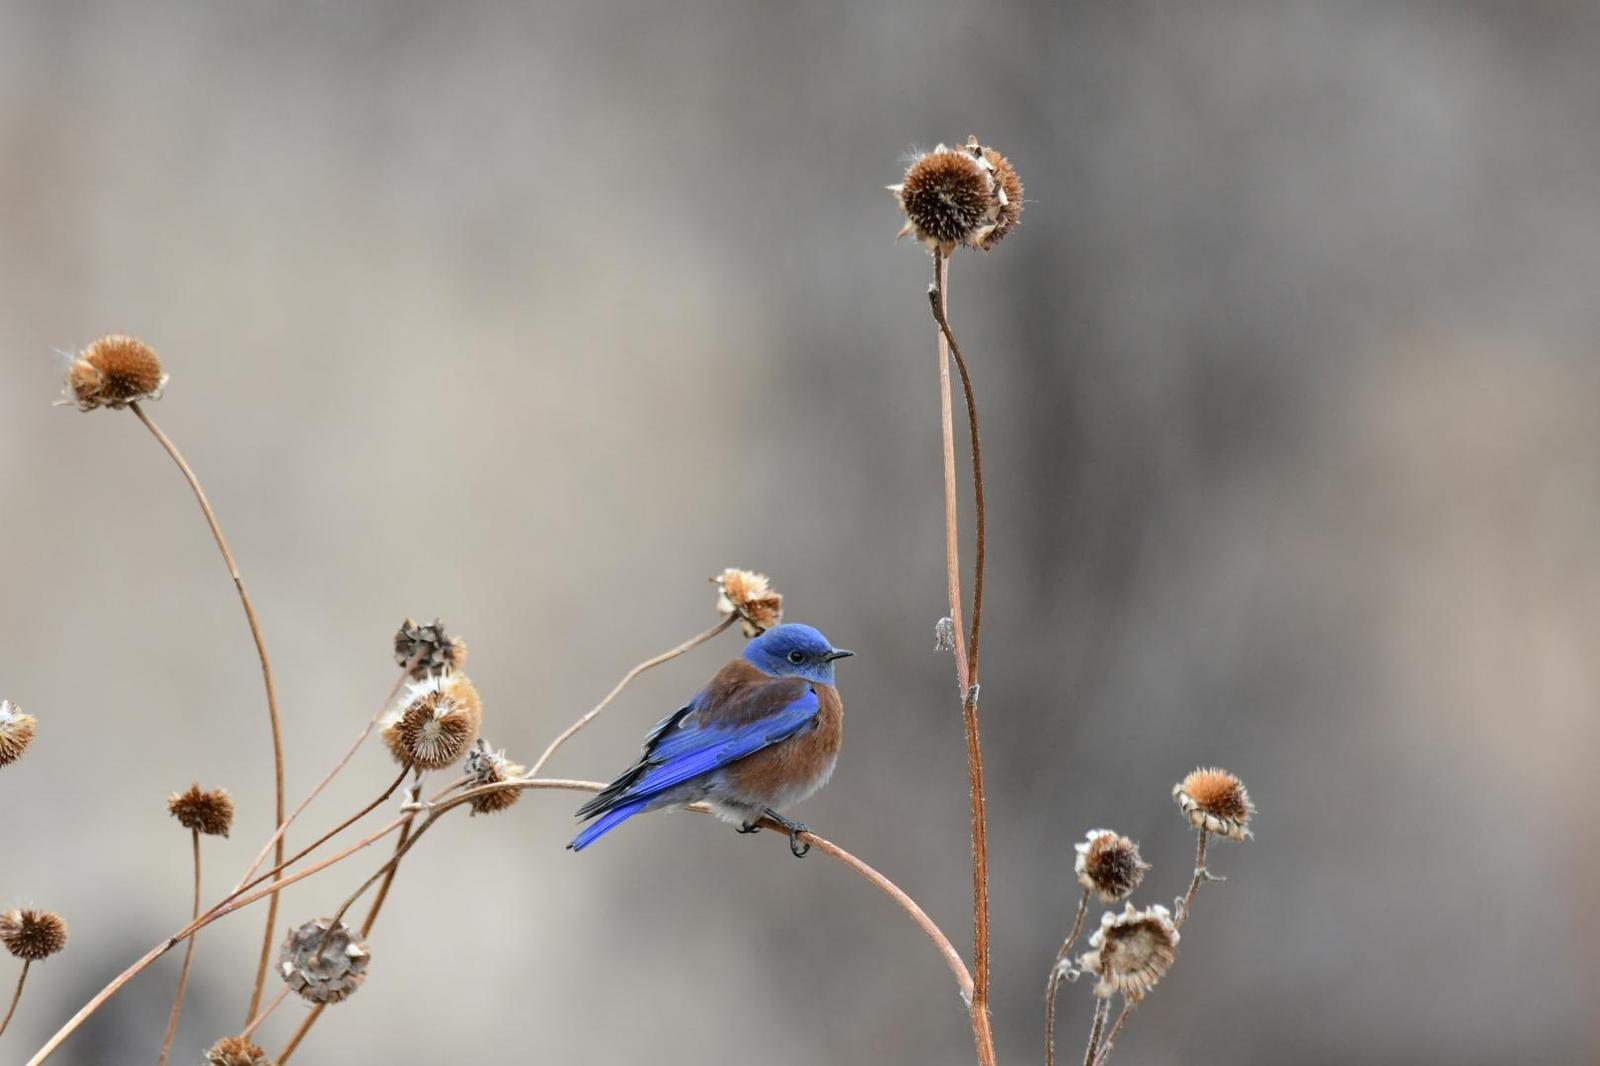 Western Bluebird Photo by Jacob Zadik